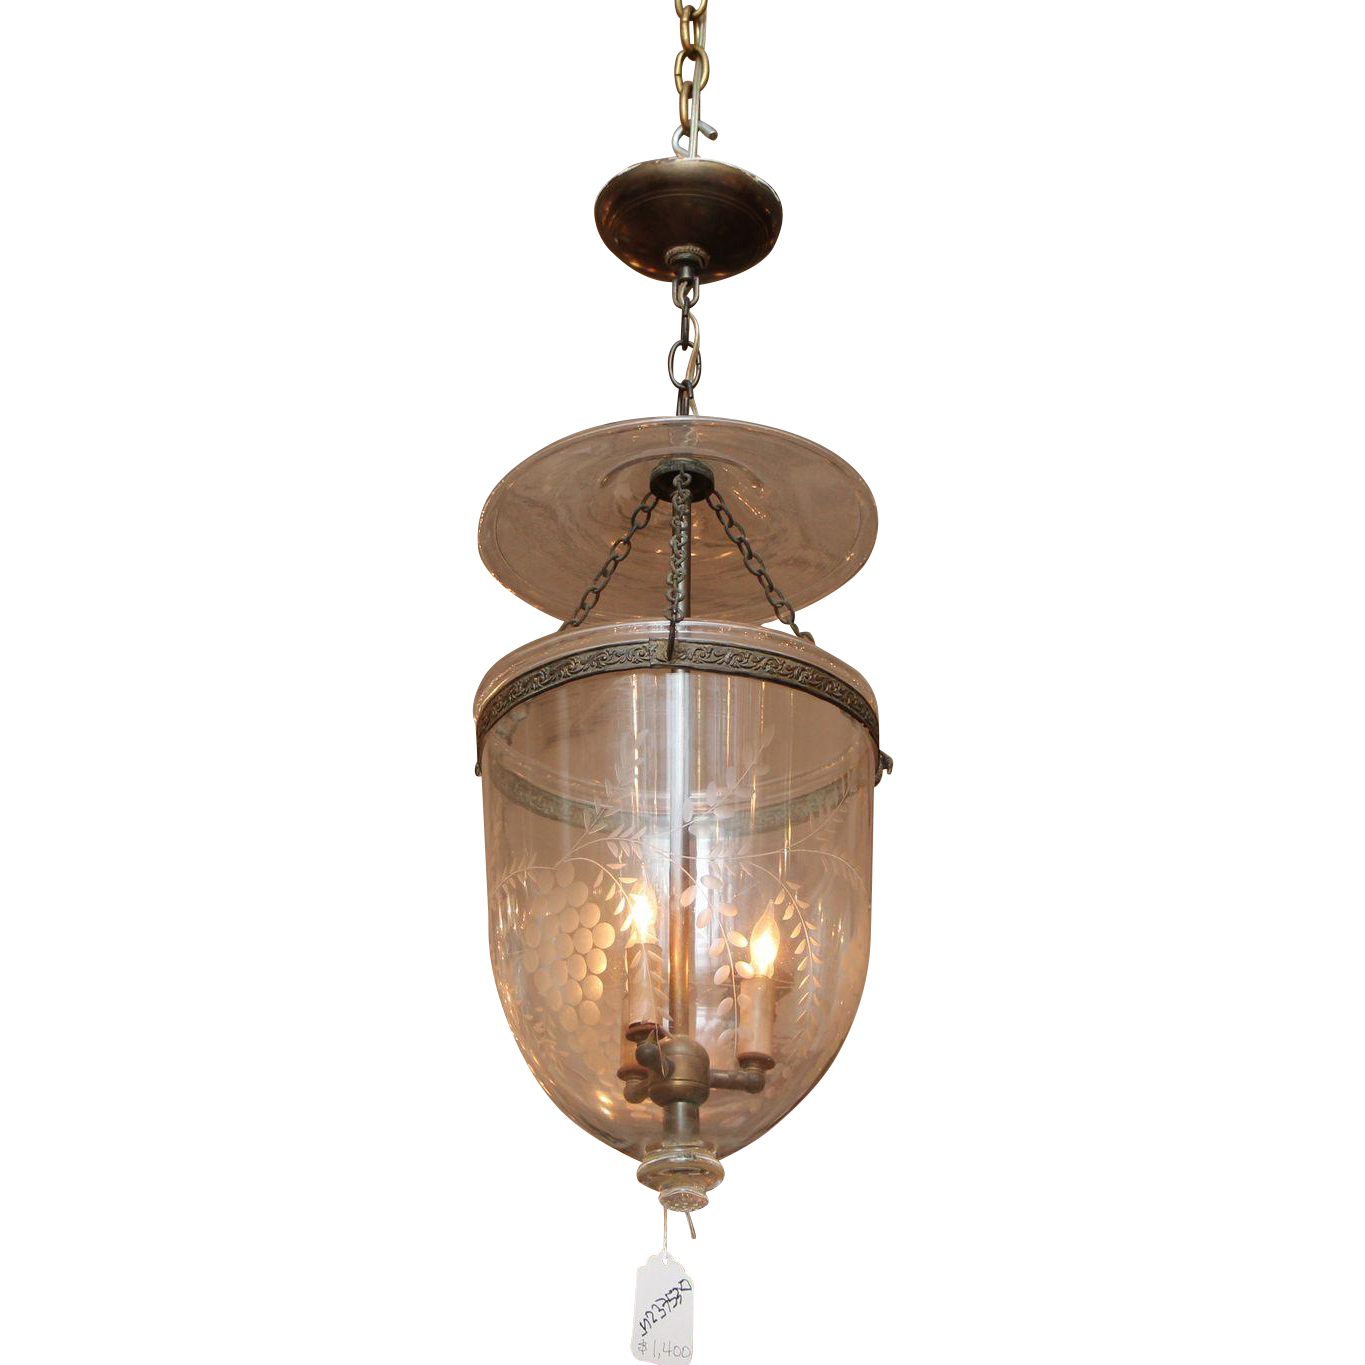 Etched clear glass bell jar pendant